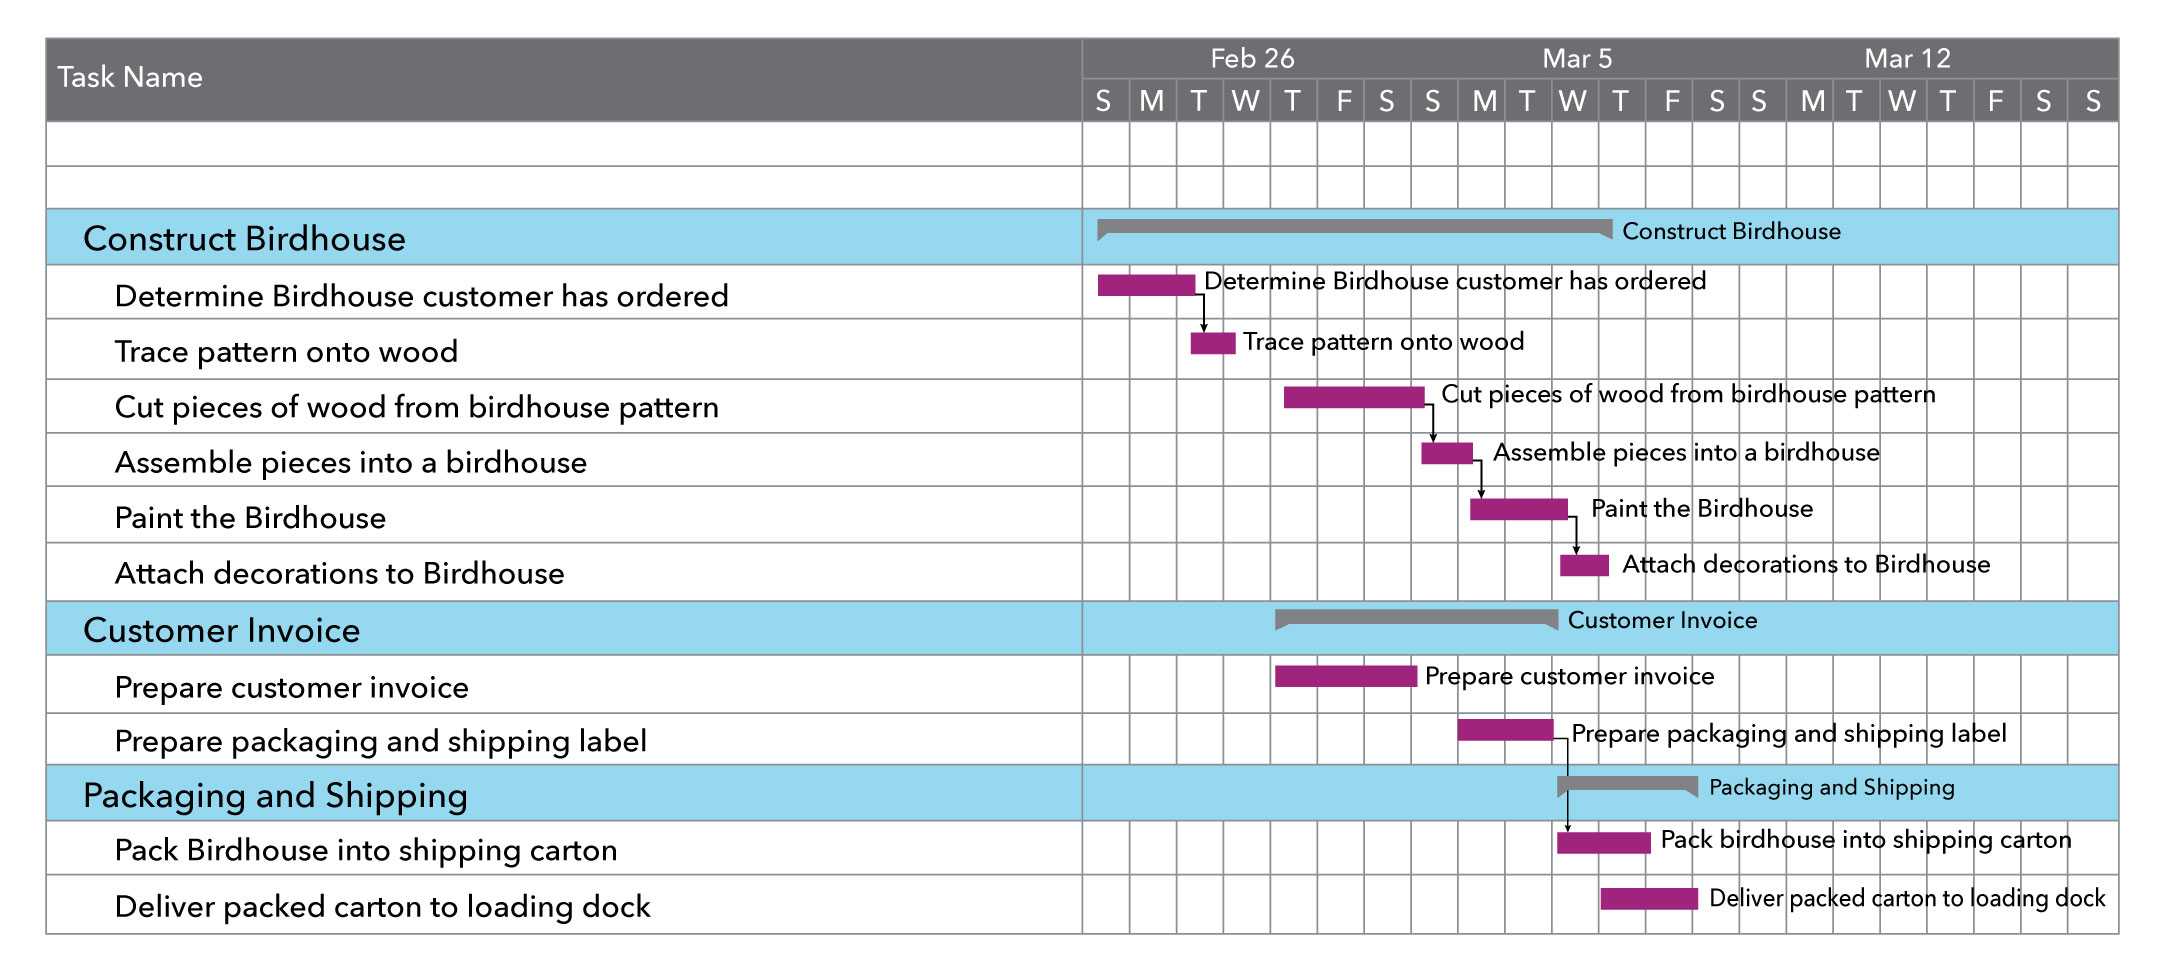 """Gantt chart shows three main projects: Construct Birdhouse, Customer invoice, and Packing and Shipping. Construct Birdhouse has six tasks listed as part of the project. To the right of the list of projects and corresponding tasks there is a timeline showing when each task will take place. The project Construct Birdhouse starts on February 23rd with """"Determine Birdhouse customer has ordered"""" and ends on March 6th with """"Attach decorations to birdhouse"""". The duration of each task is represented with a purple highlight over the days of the week that task will occur. The tasks for the project Customer Invoice and the project """"Packing and Shipping"""" are represented in the same way. Construct Birdhouse and Customer Invoice start on February 27th while Packing and Shipping start on March 5th."""